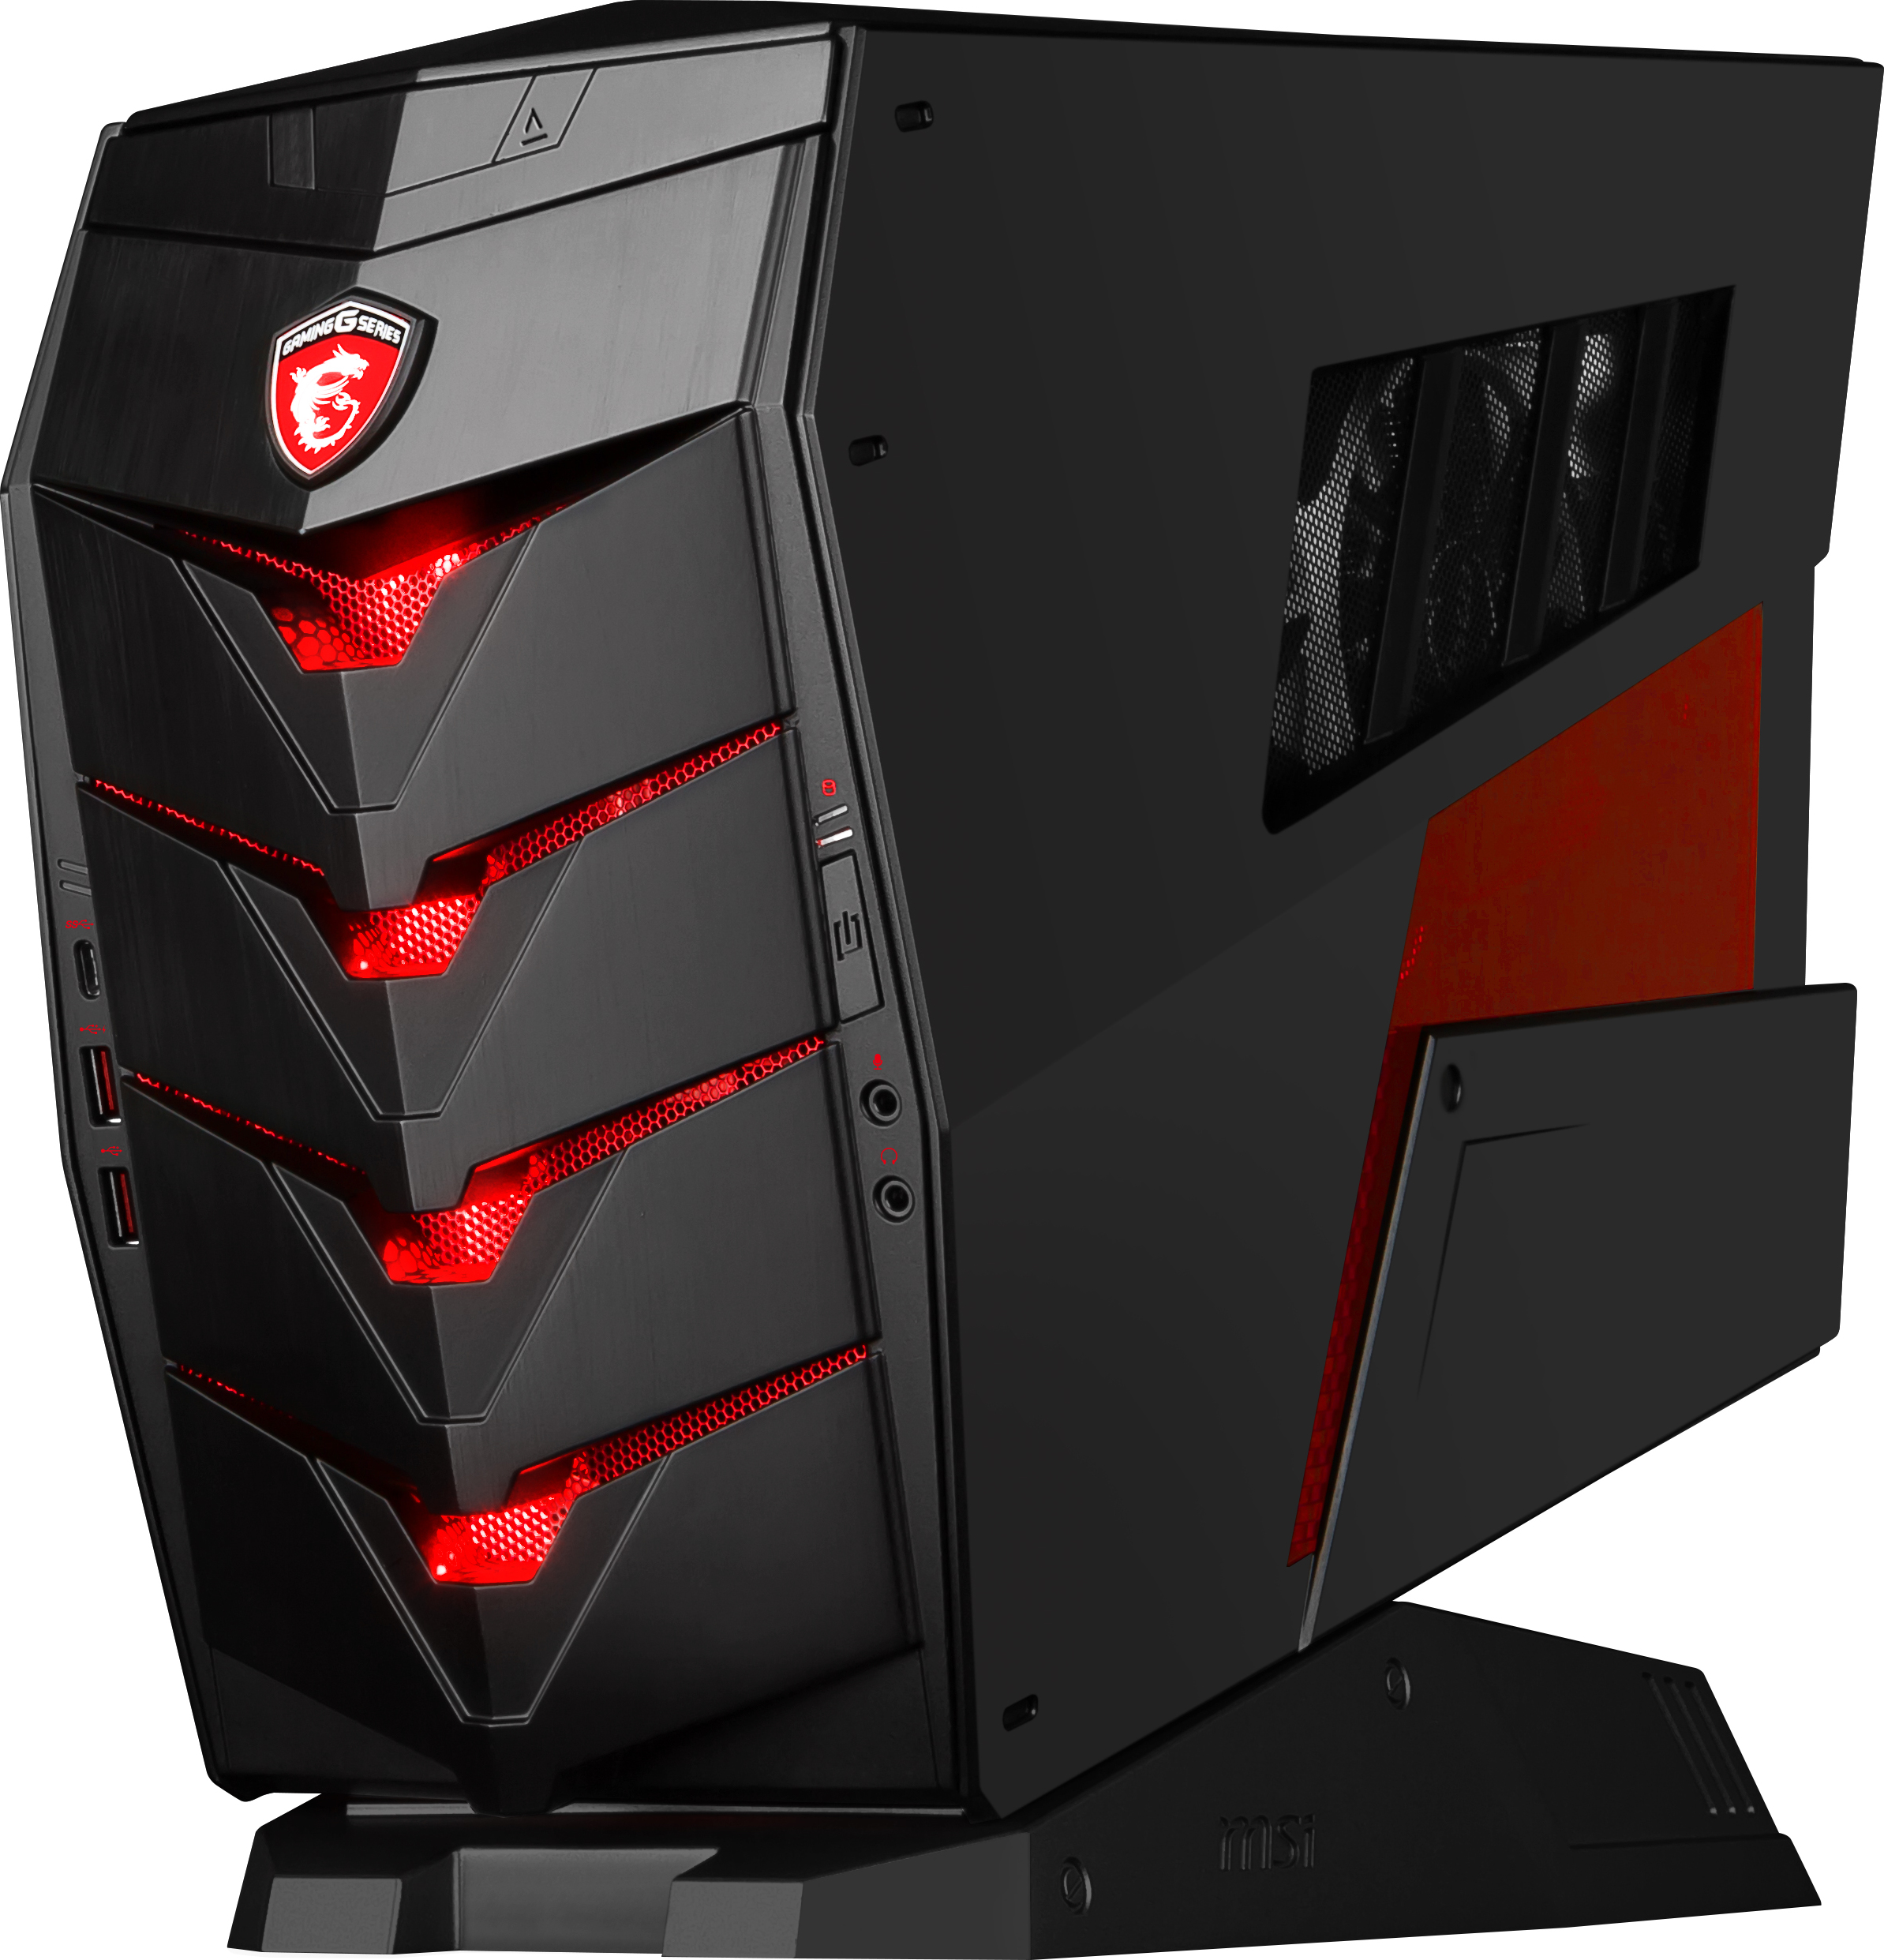 msi aegis l 39 ordinateur de bureau taill pour le gaming fiche technique prix et date de. Black Bedroom Furniture Sets. Home Design Ideas